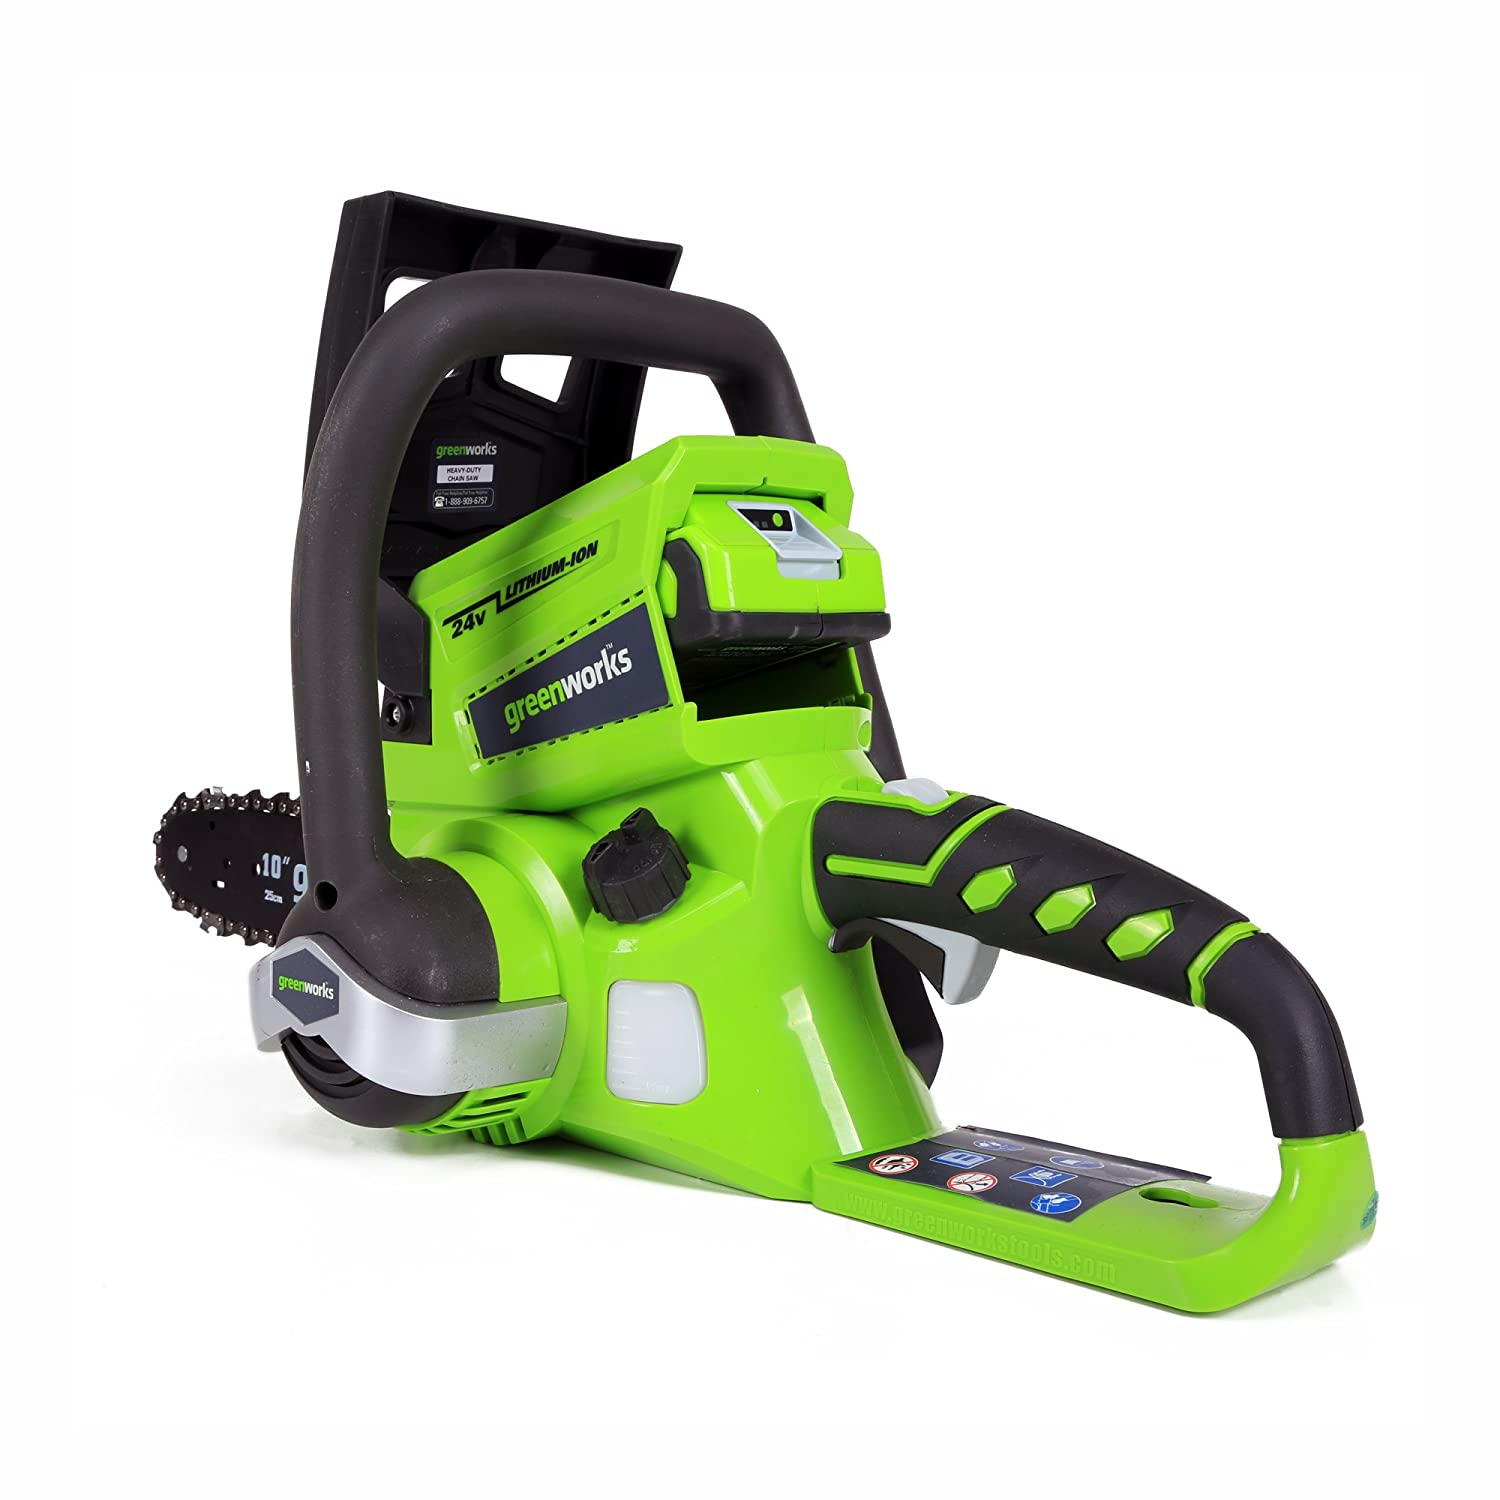 2.0 AH Battery Included 20362 Greenworks 10-Inch 24V Cordless Chainsaw